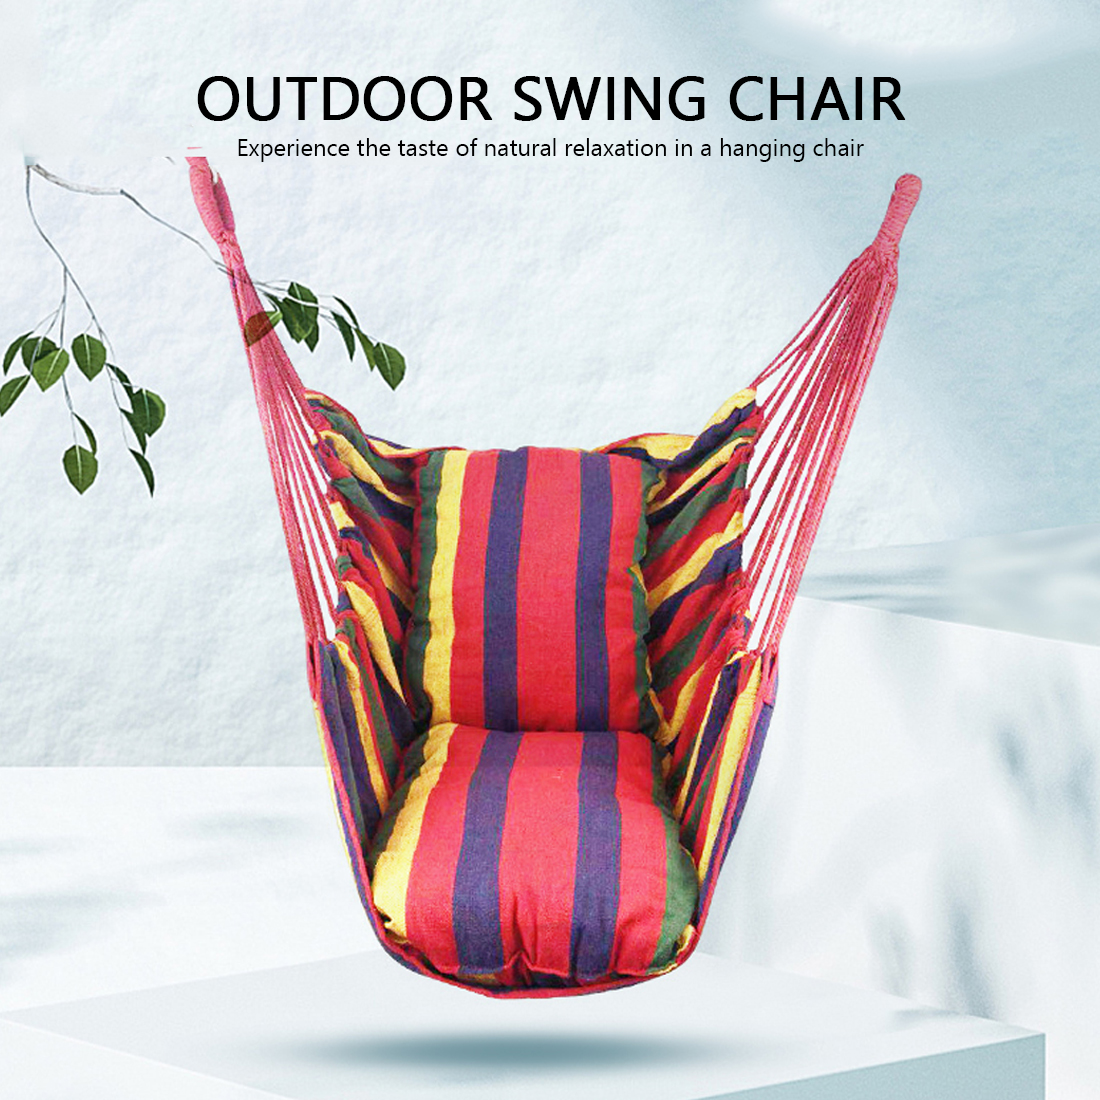 No Pillow Hammock 270 Hanging Rope Hammock Chair Swing Seat Large Hammock Chair Relax Hanging Swing Chair for Indoor Child Adult 1